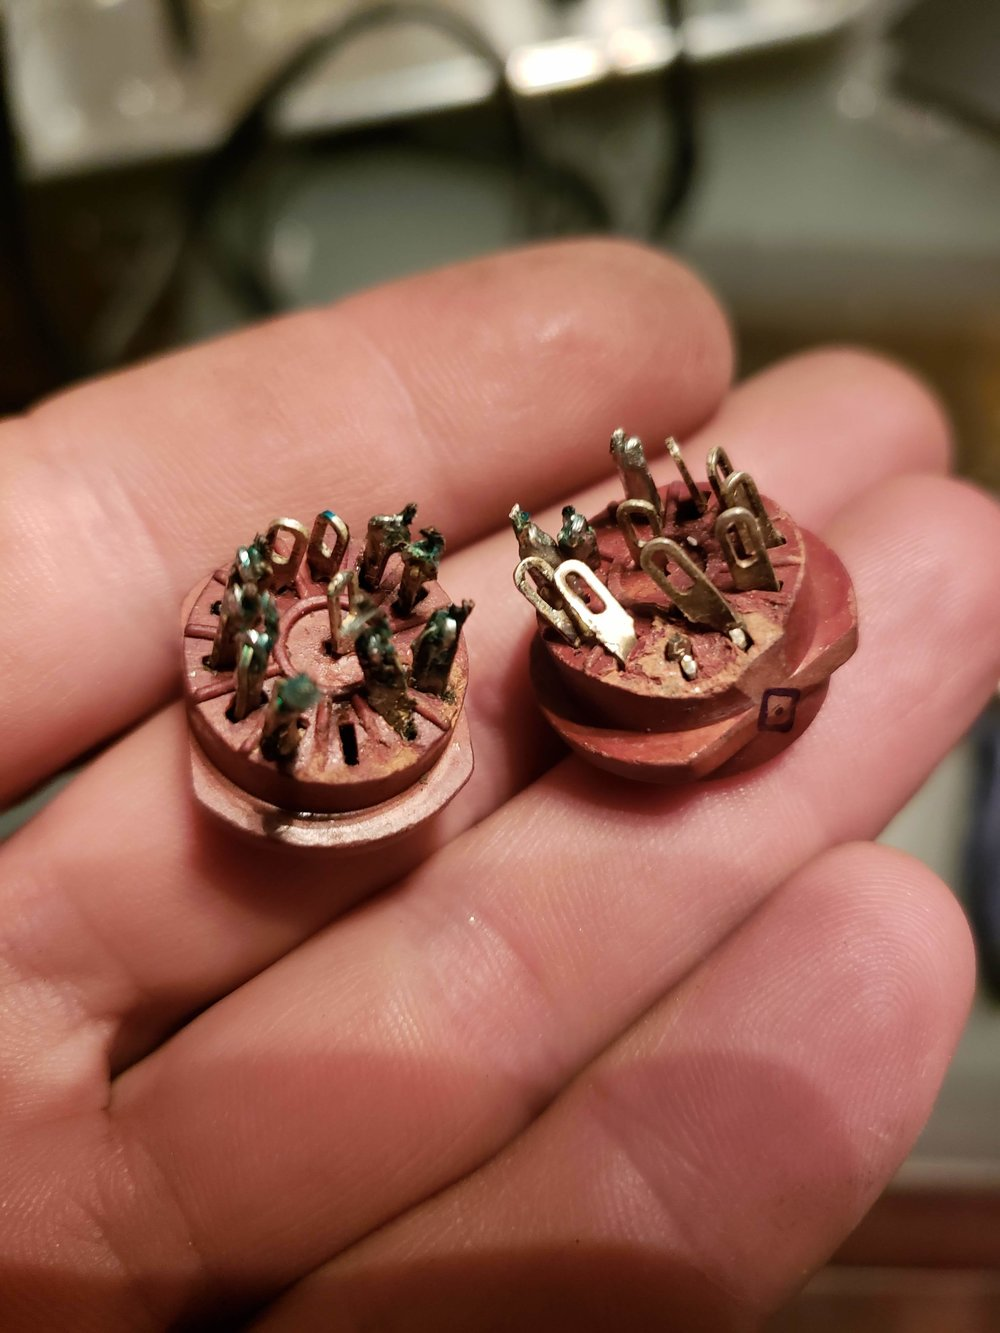 Previously-used 1960s-era Nixie tube sockets that need some desoldering (and some repair)